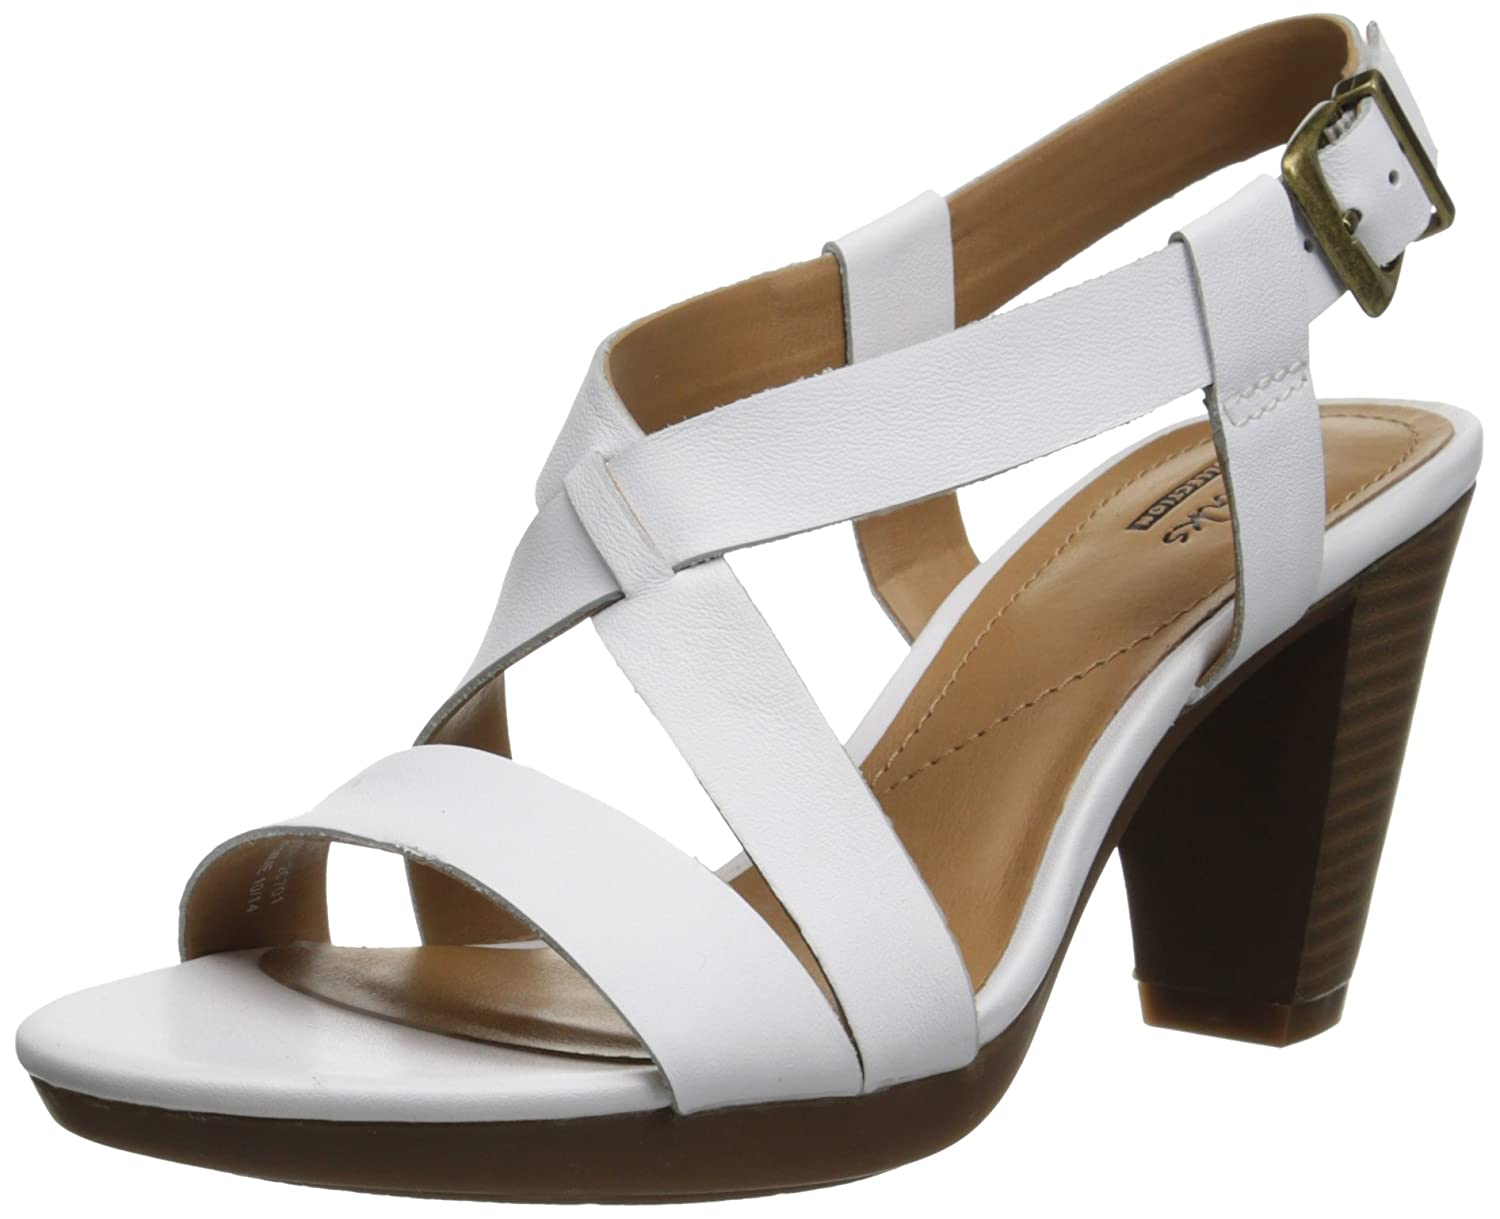 Clarks Women's Jaelyn Fog Dress Sandal